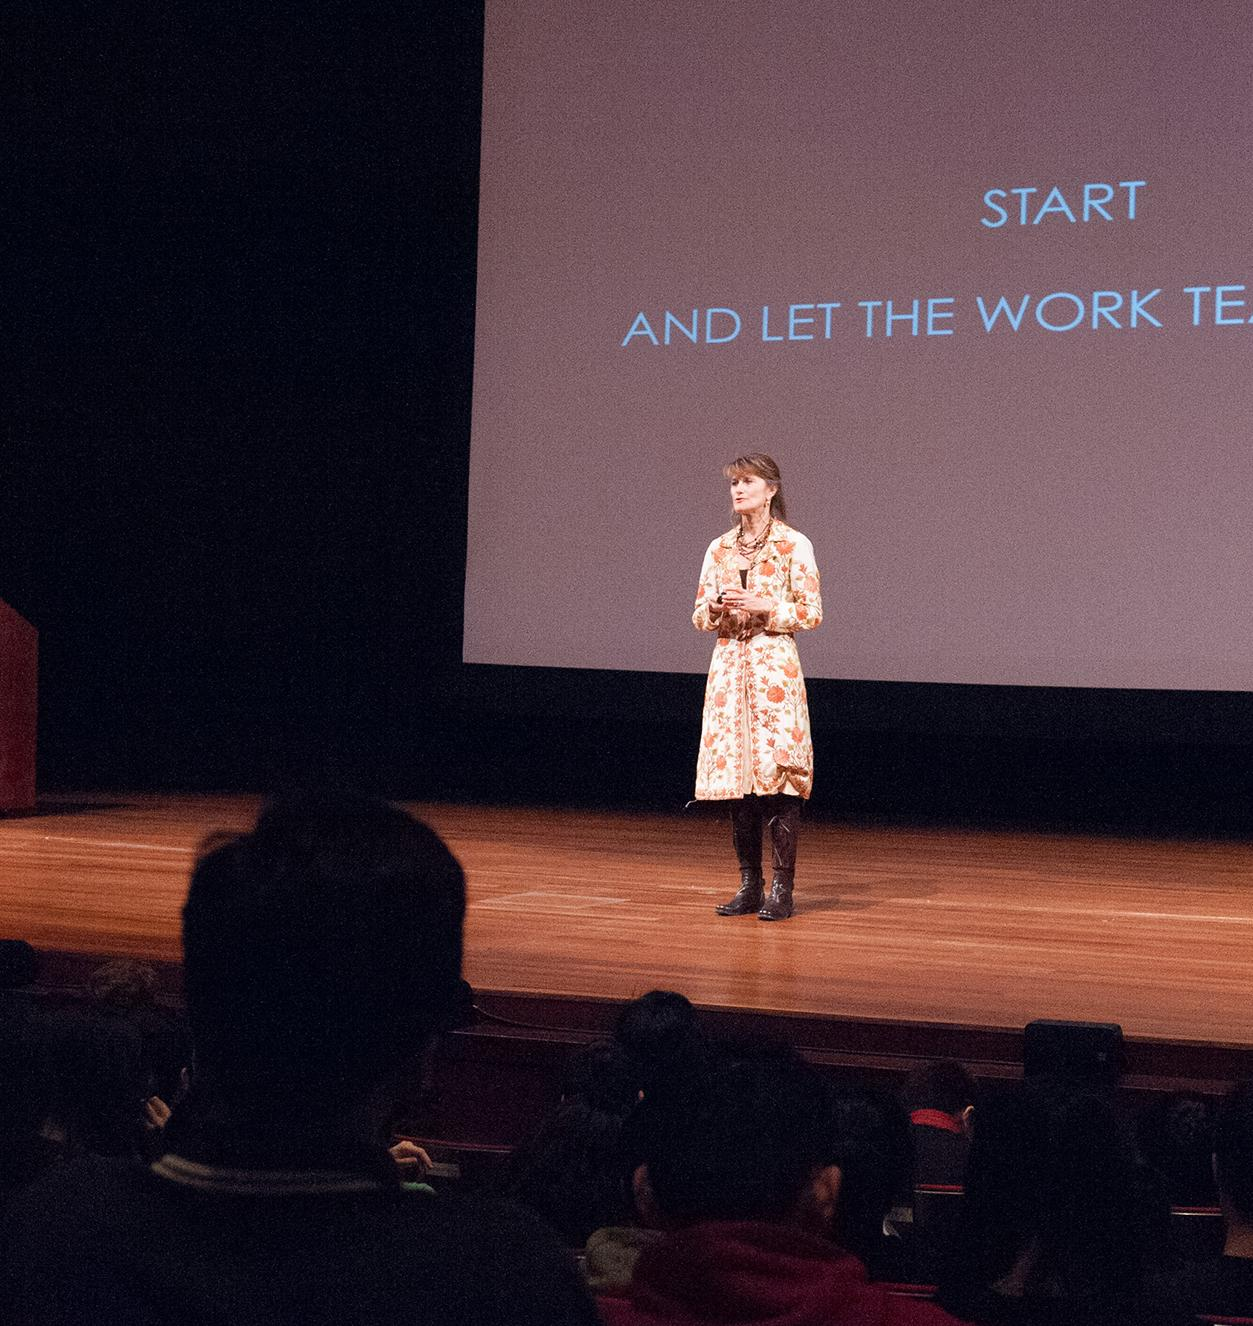 Jacqueline Novogratz, Founder and Chief Executive Officer at Acumen, speaking on March 10, 2014 to Stern freshmen on the topic of